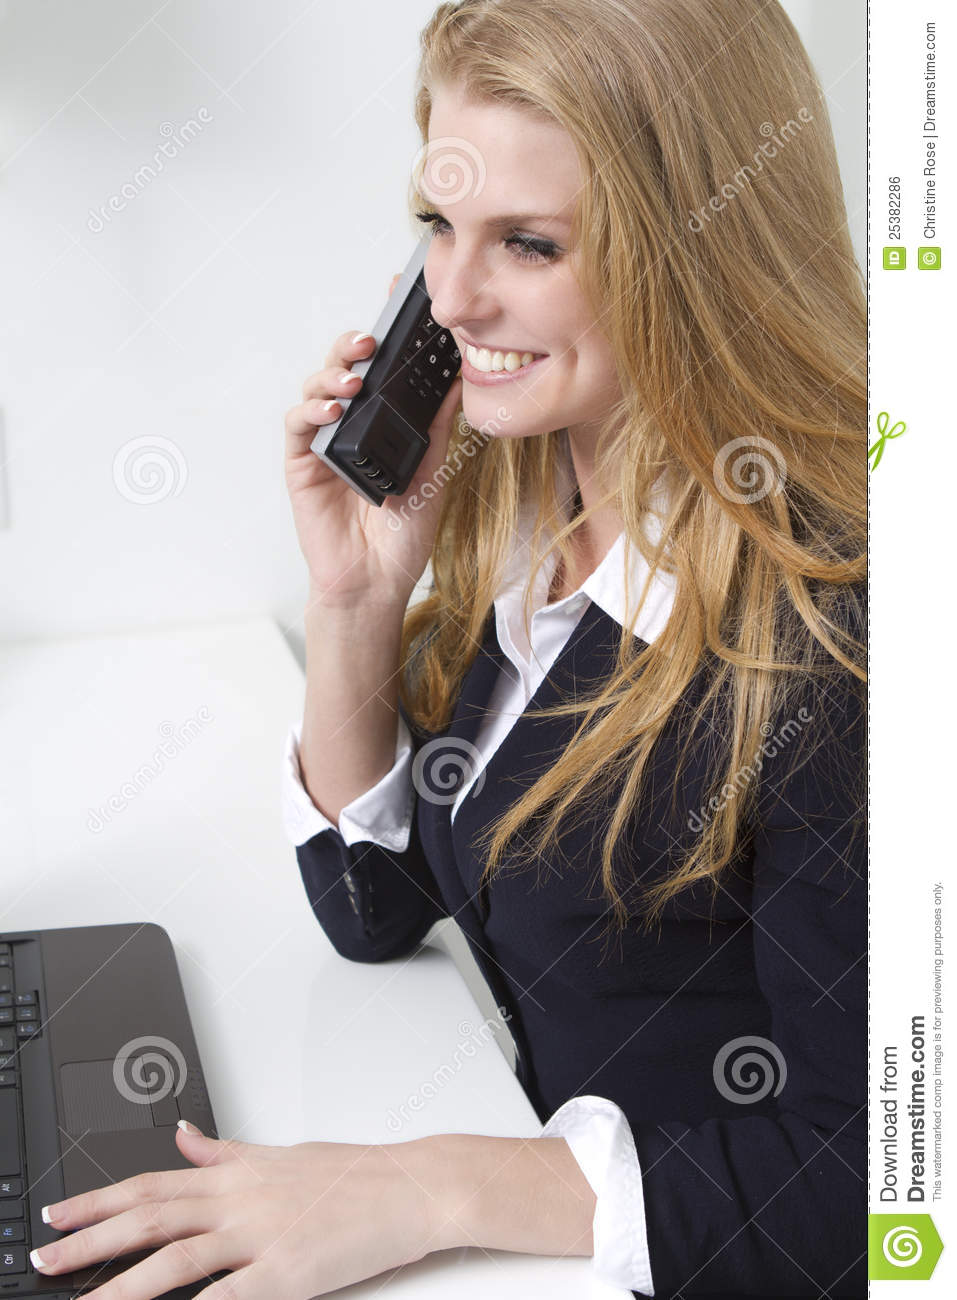 Friendly Customer Service Person On Phone Stock Photo